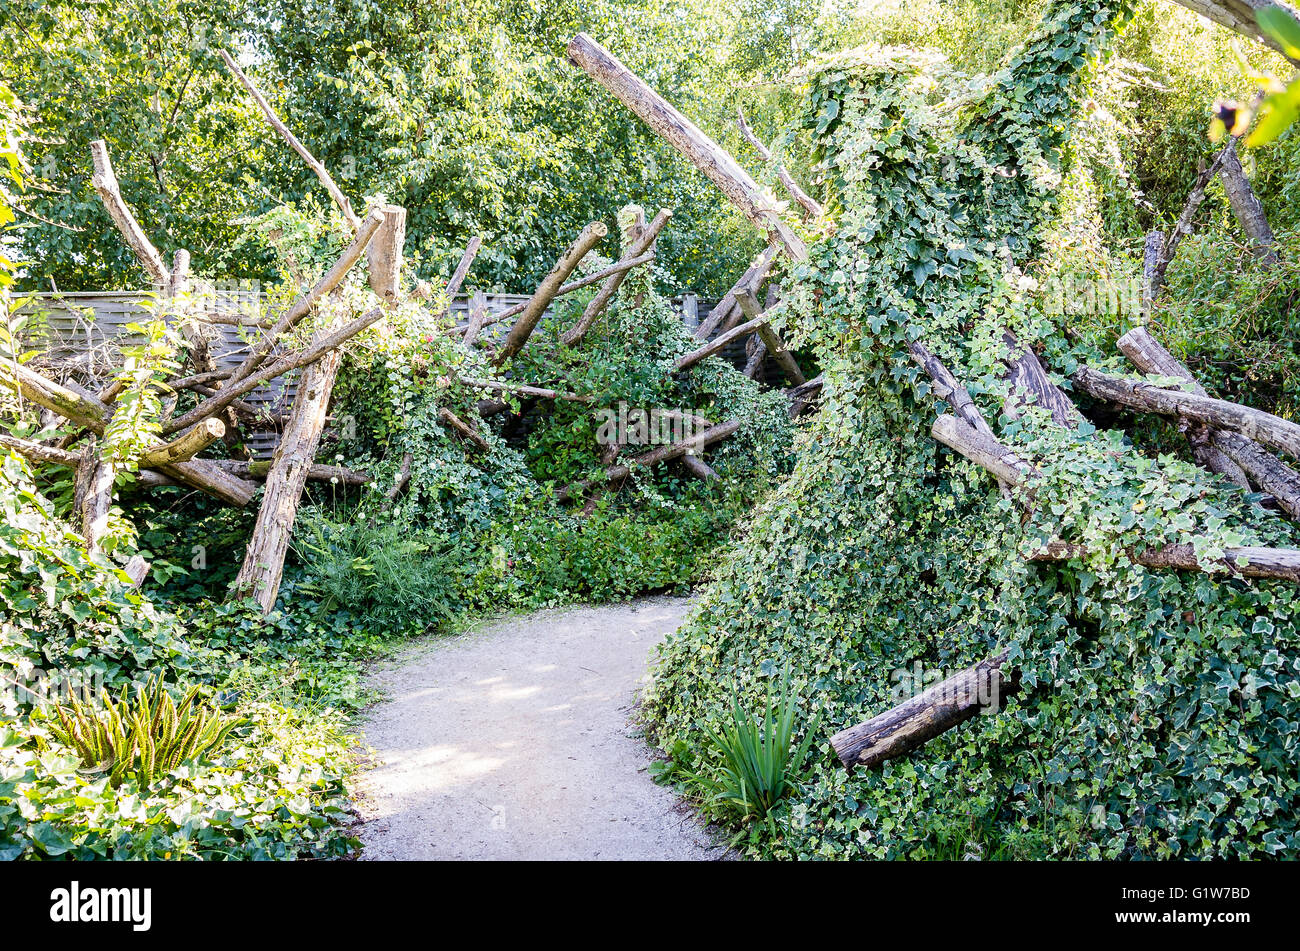 Path through an unusual garden based on old material clothed with natural ivy - Stock Image